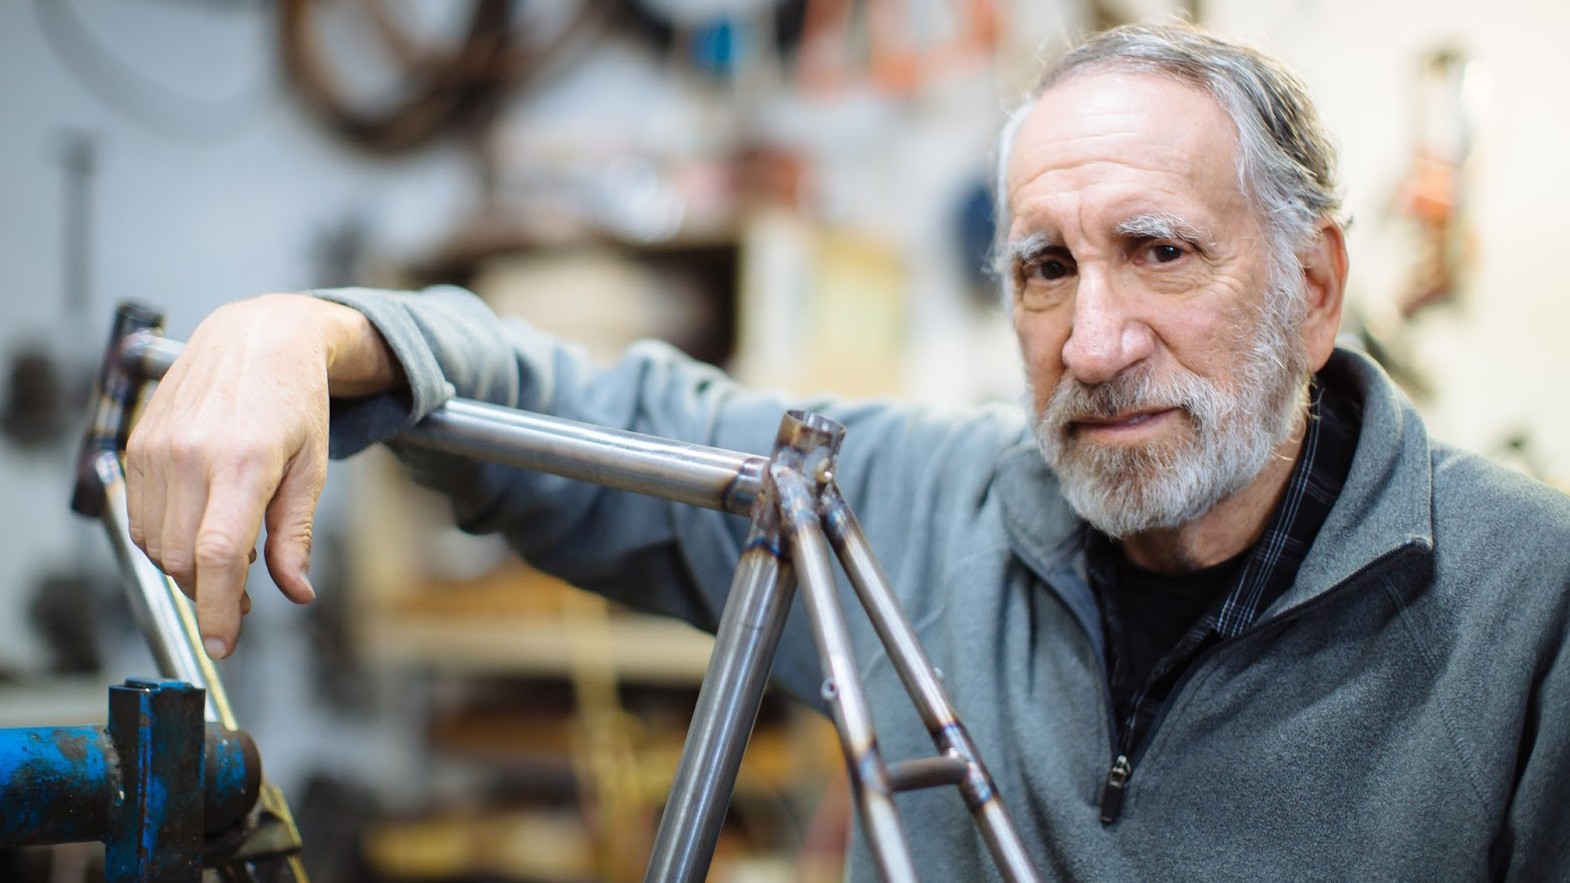 Legendary framebuilder Bruce Gordon is selling his business and inventory